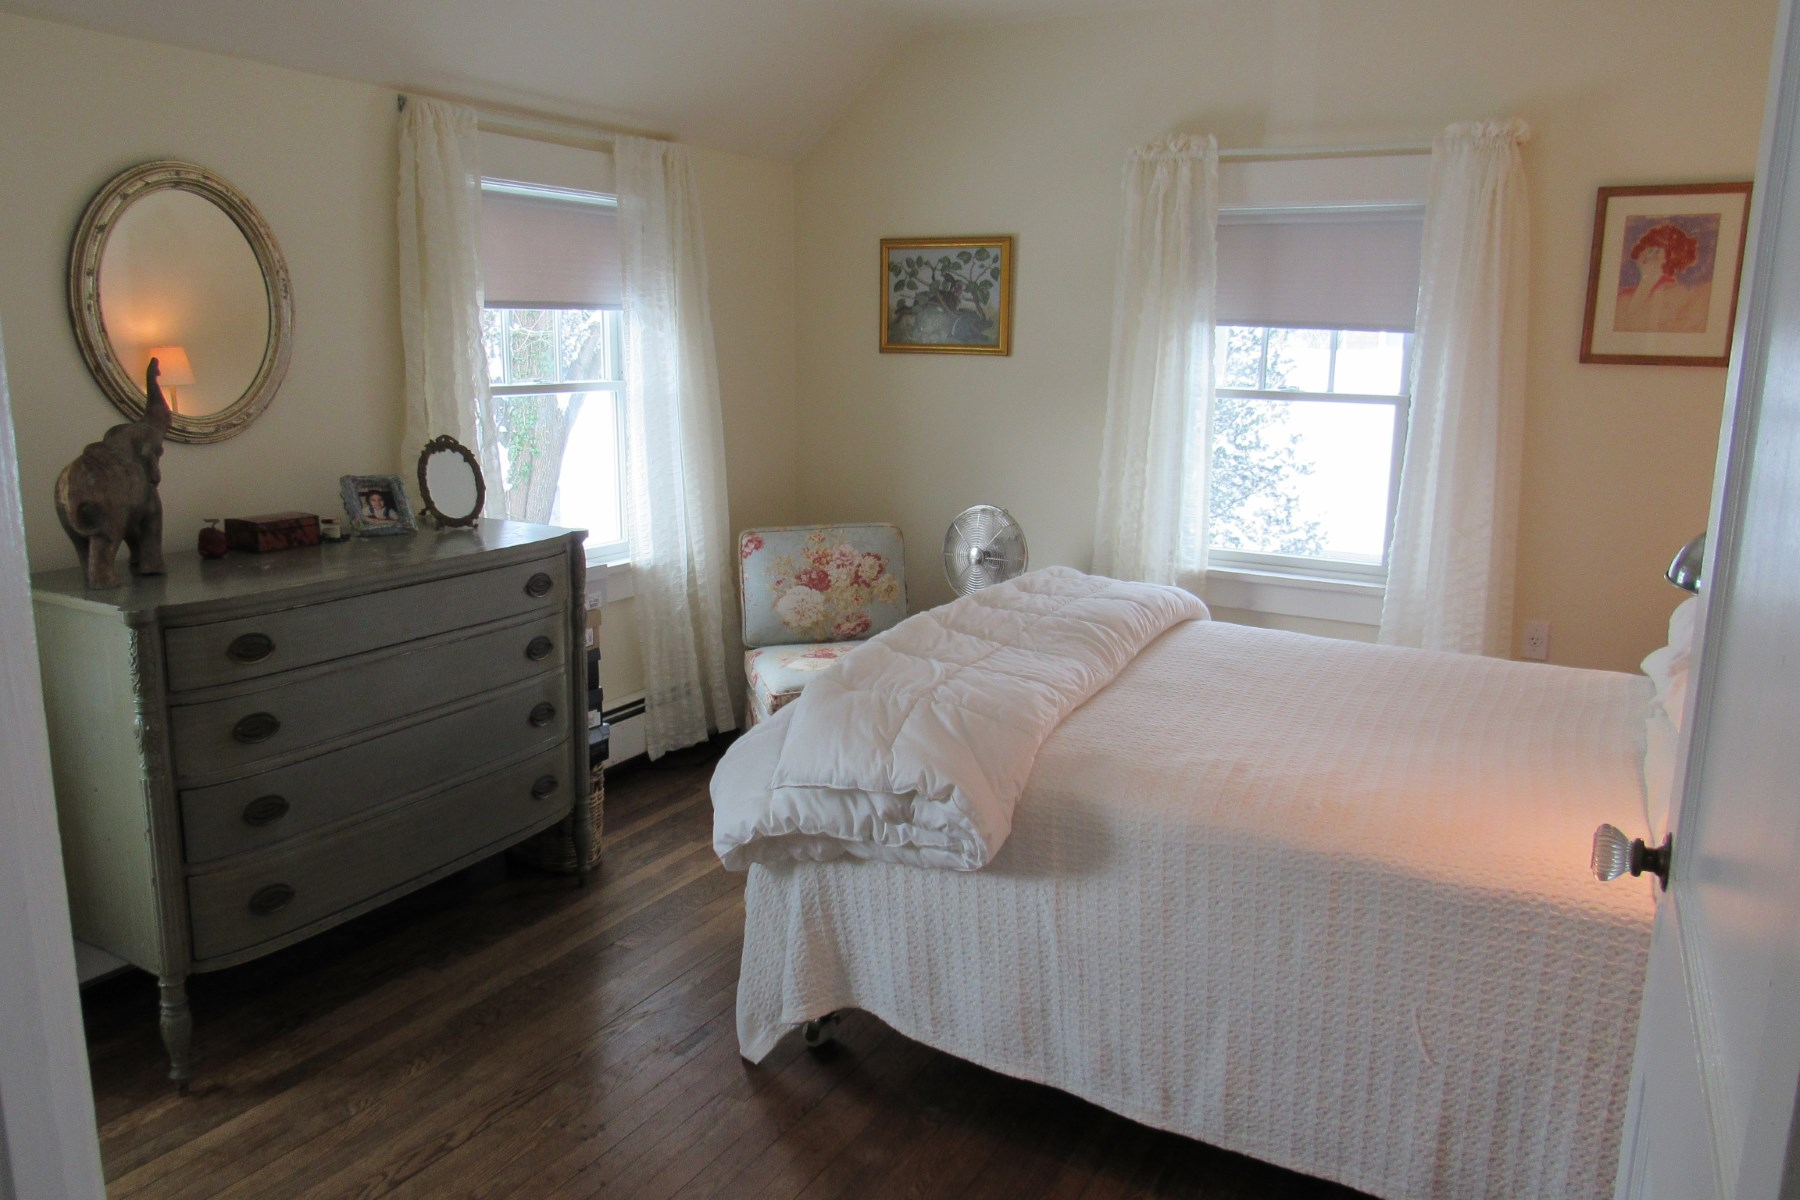 Additional photo for property listing at Antique-Filled Home to Rent 20 Pelletreau St Southampton, New York 11968 United States